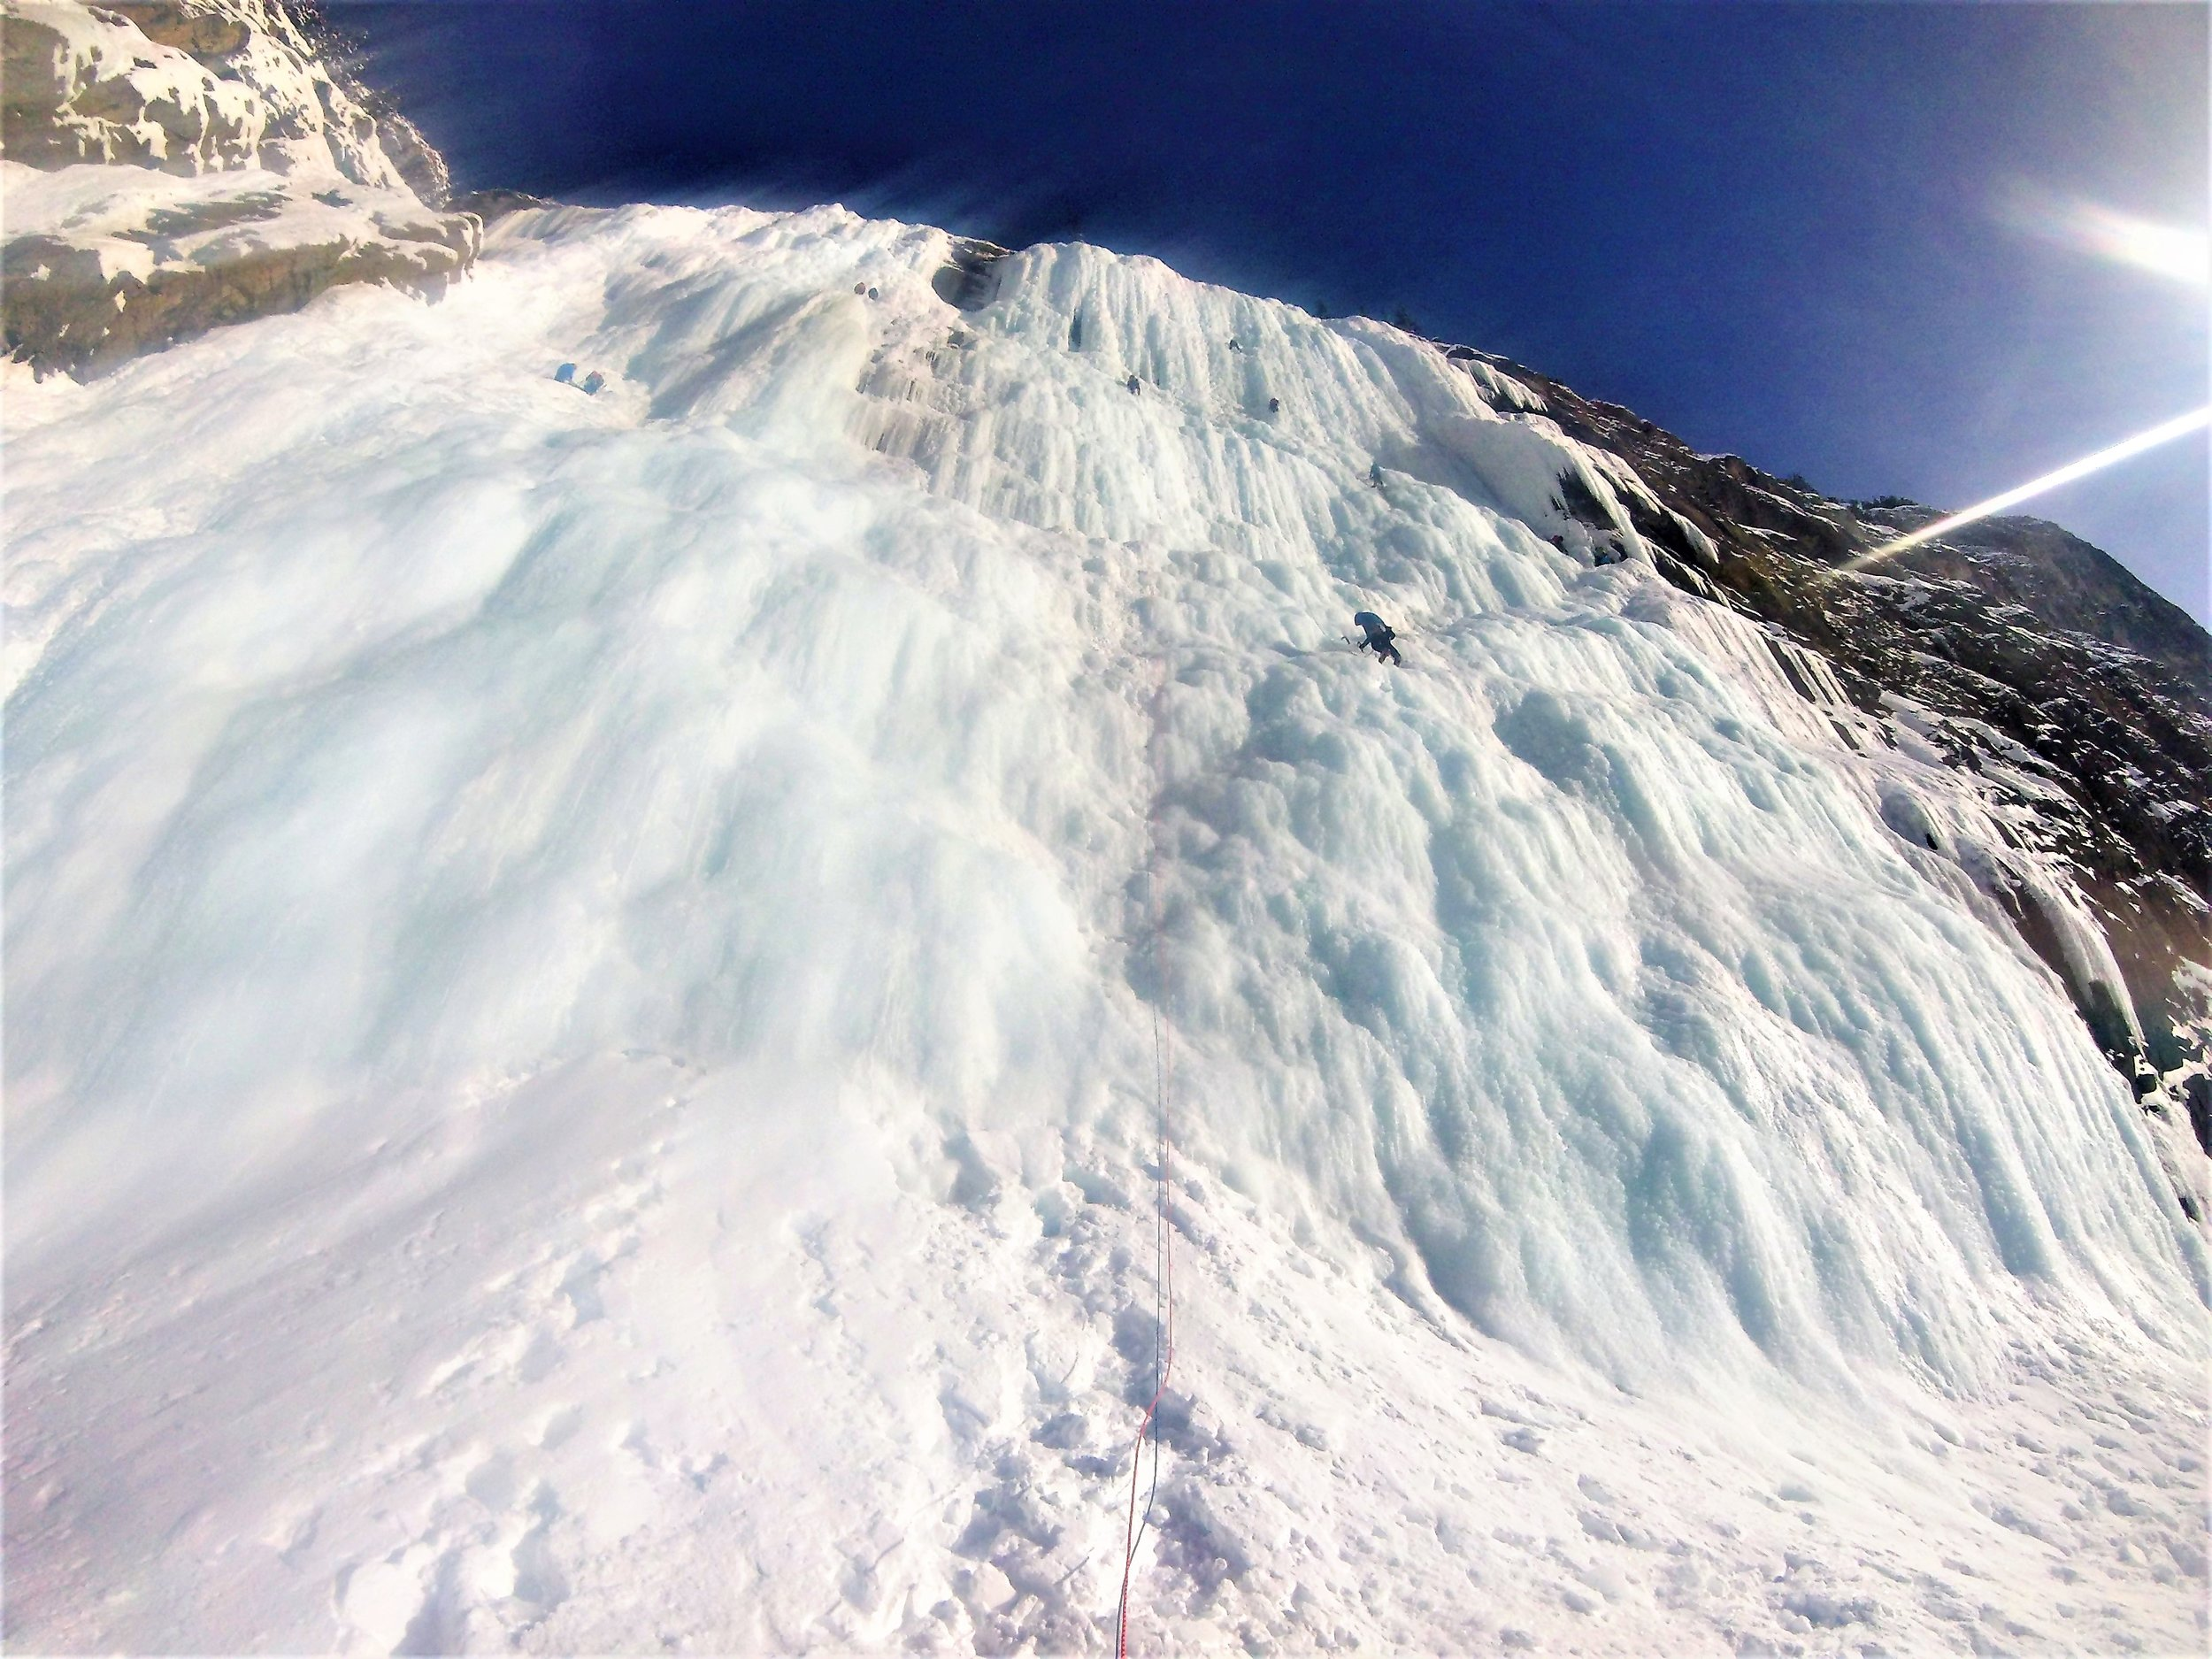 Busy day out on the Weeping Wall. Thankfully its large enough that parties don't risk dropping too much ice on each other.